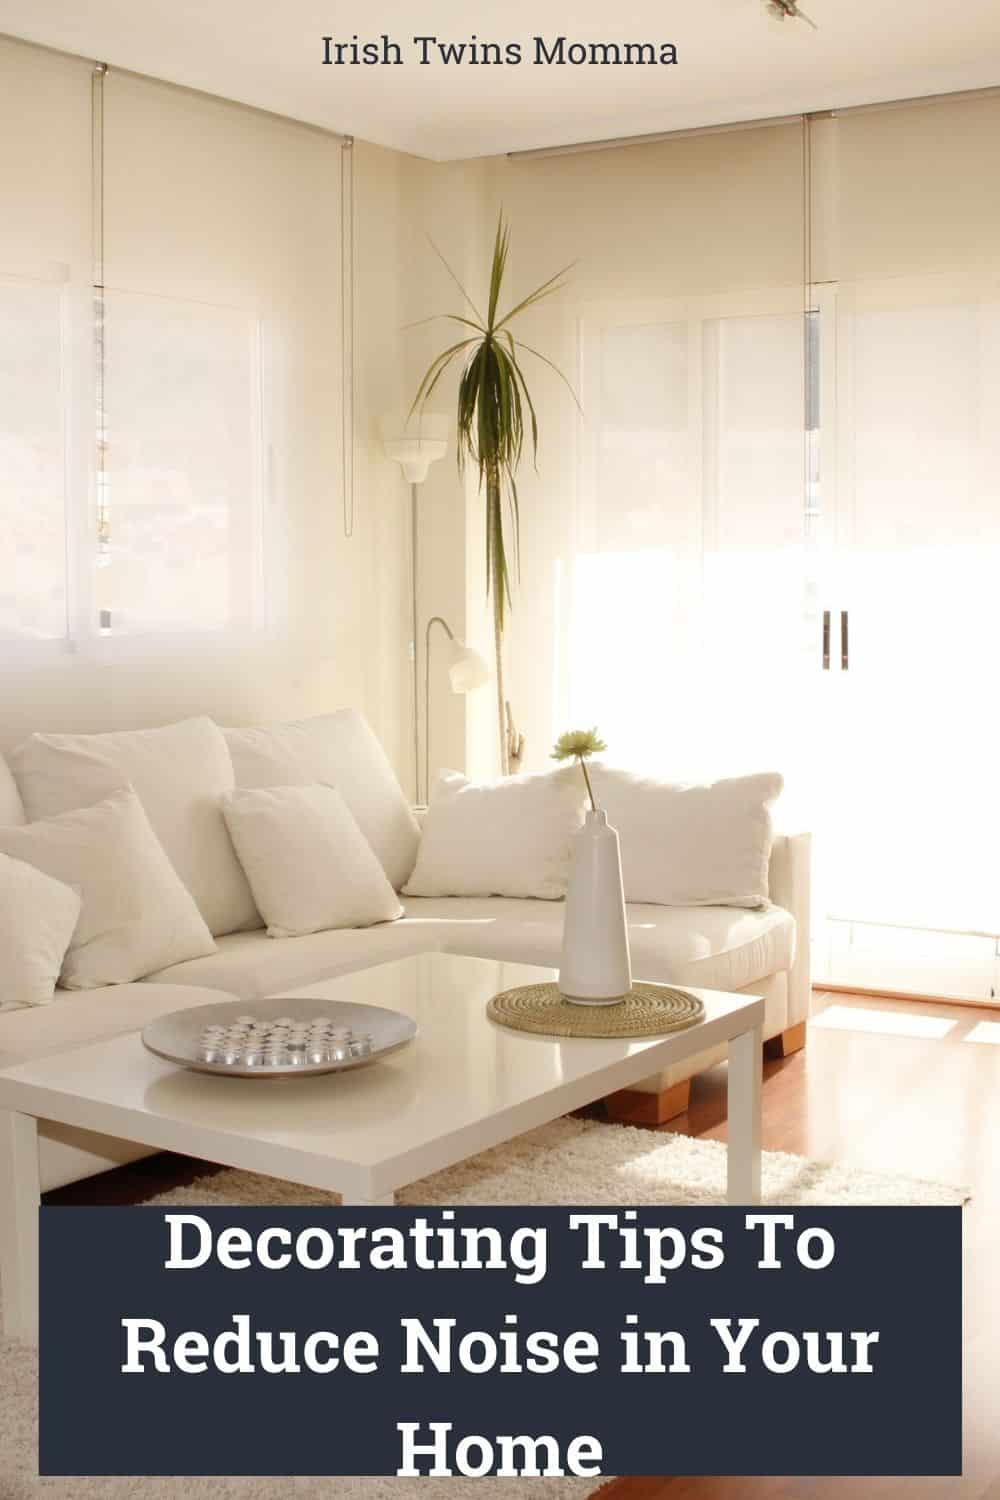 Decorating Tips To Reduce Noise in Your Home